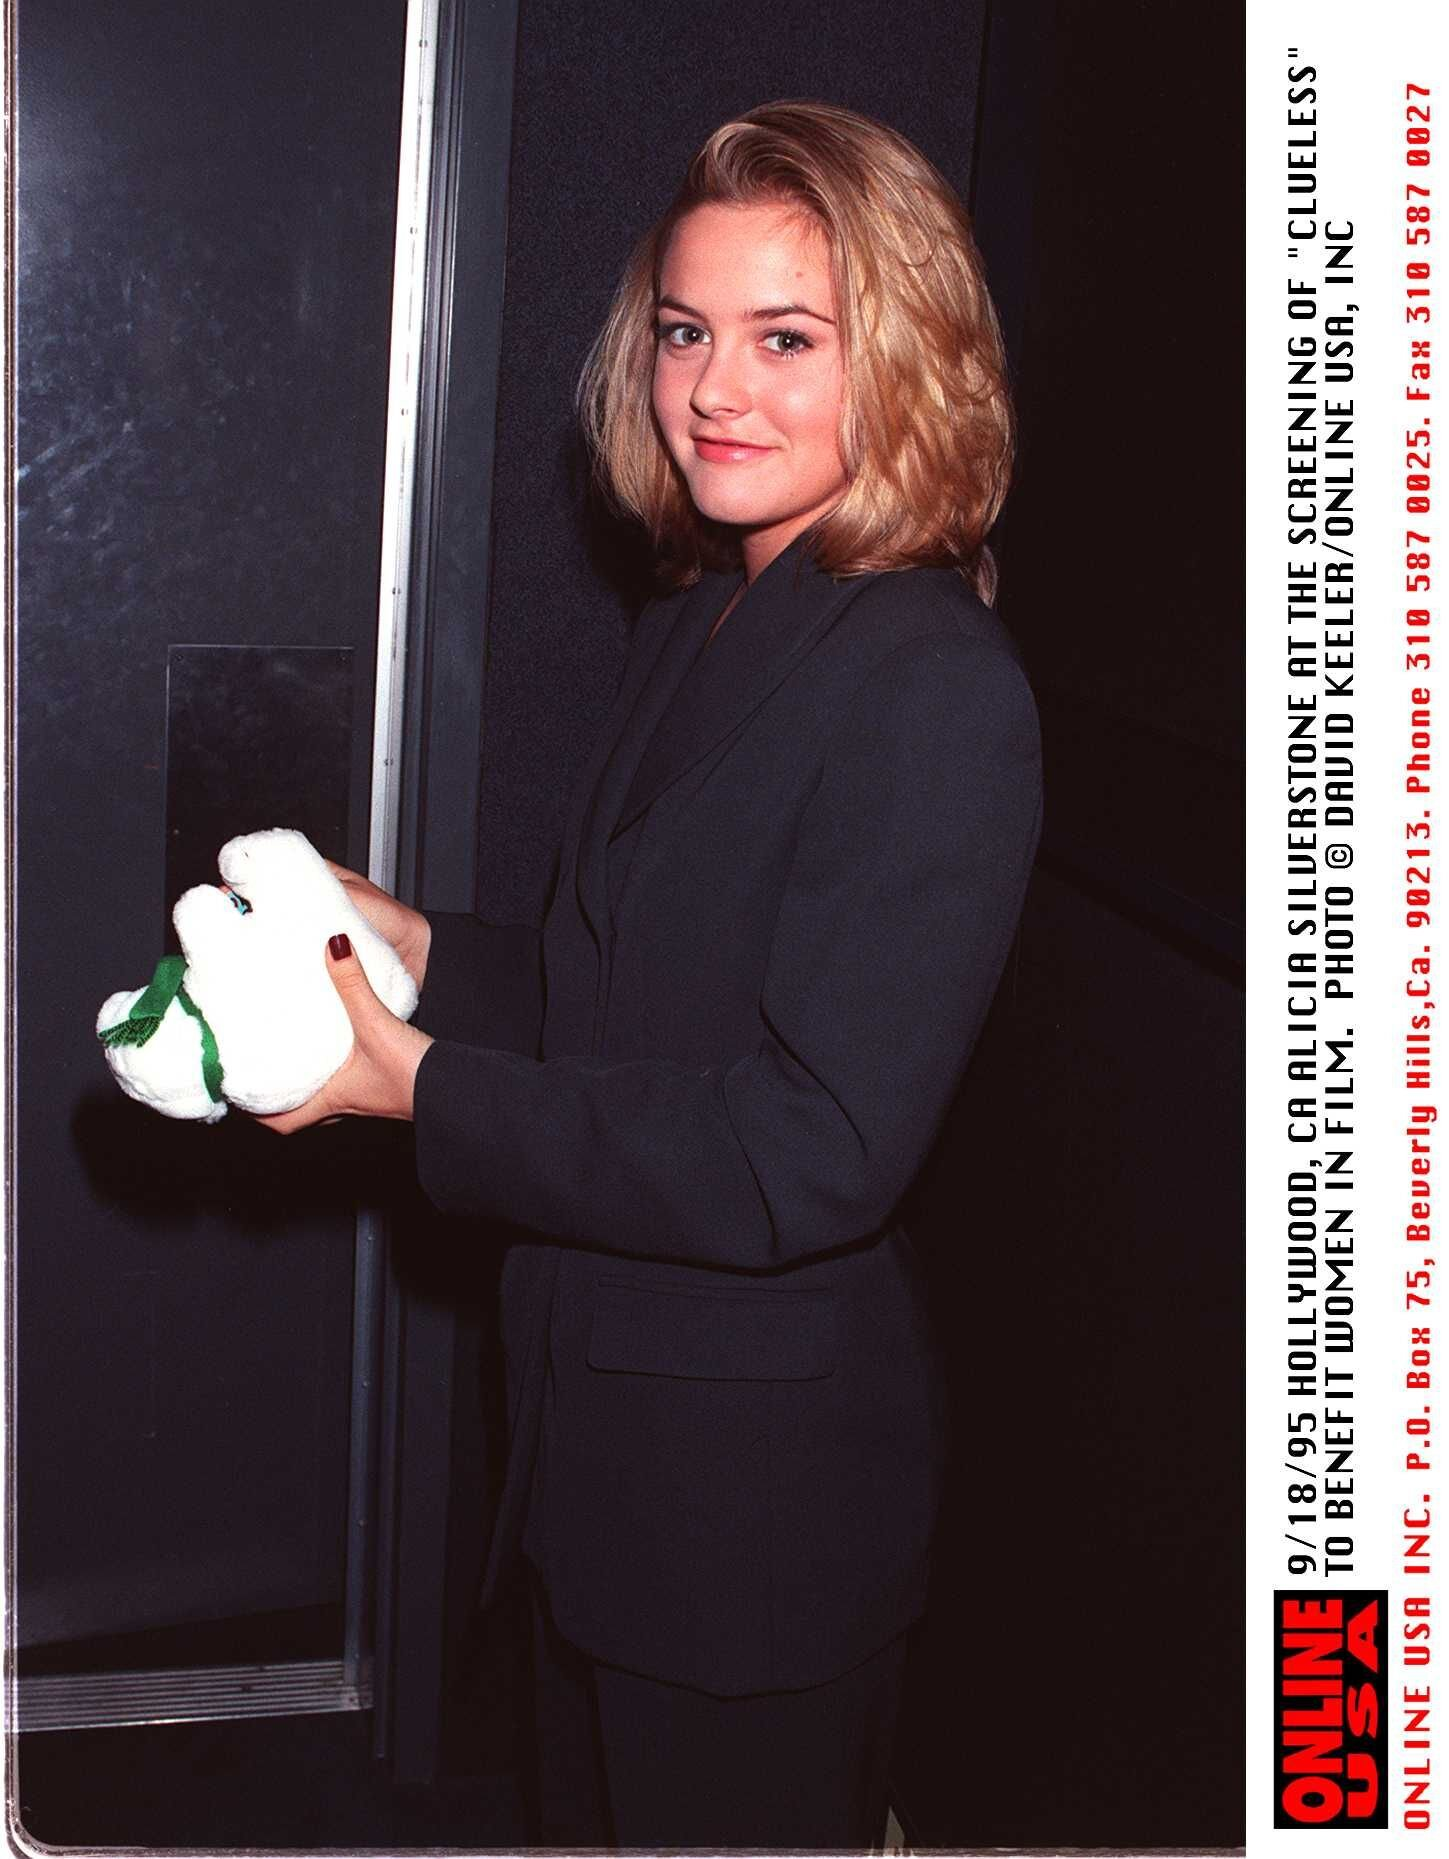 """Alicia Silverstone in the screening of """"Clueless"""" benefit in Hollywood in 1995 